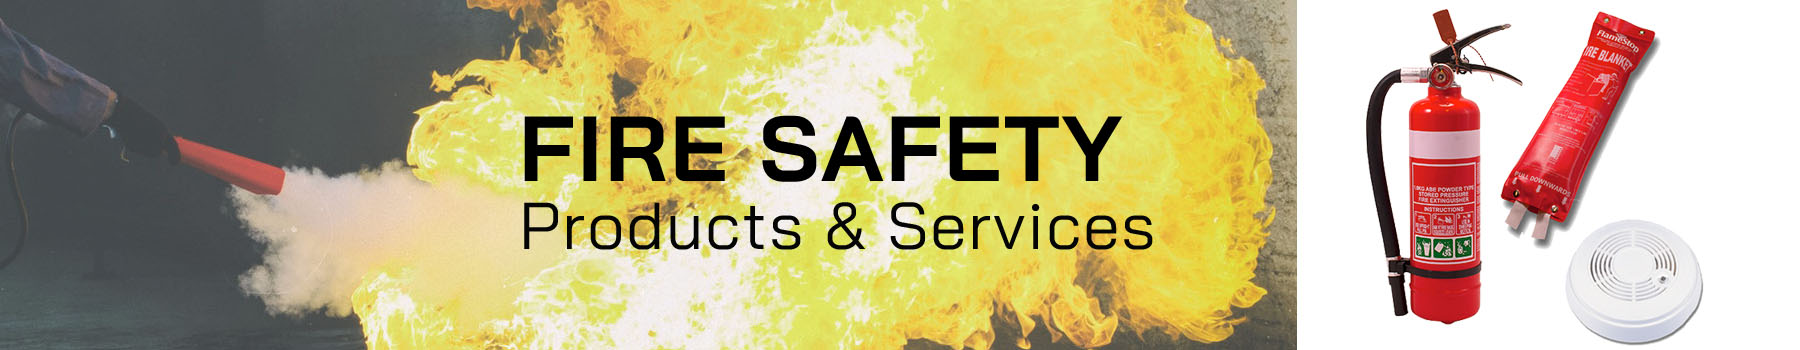 Fire Safety Services & Inspections